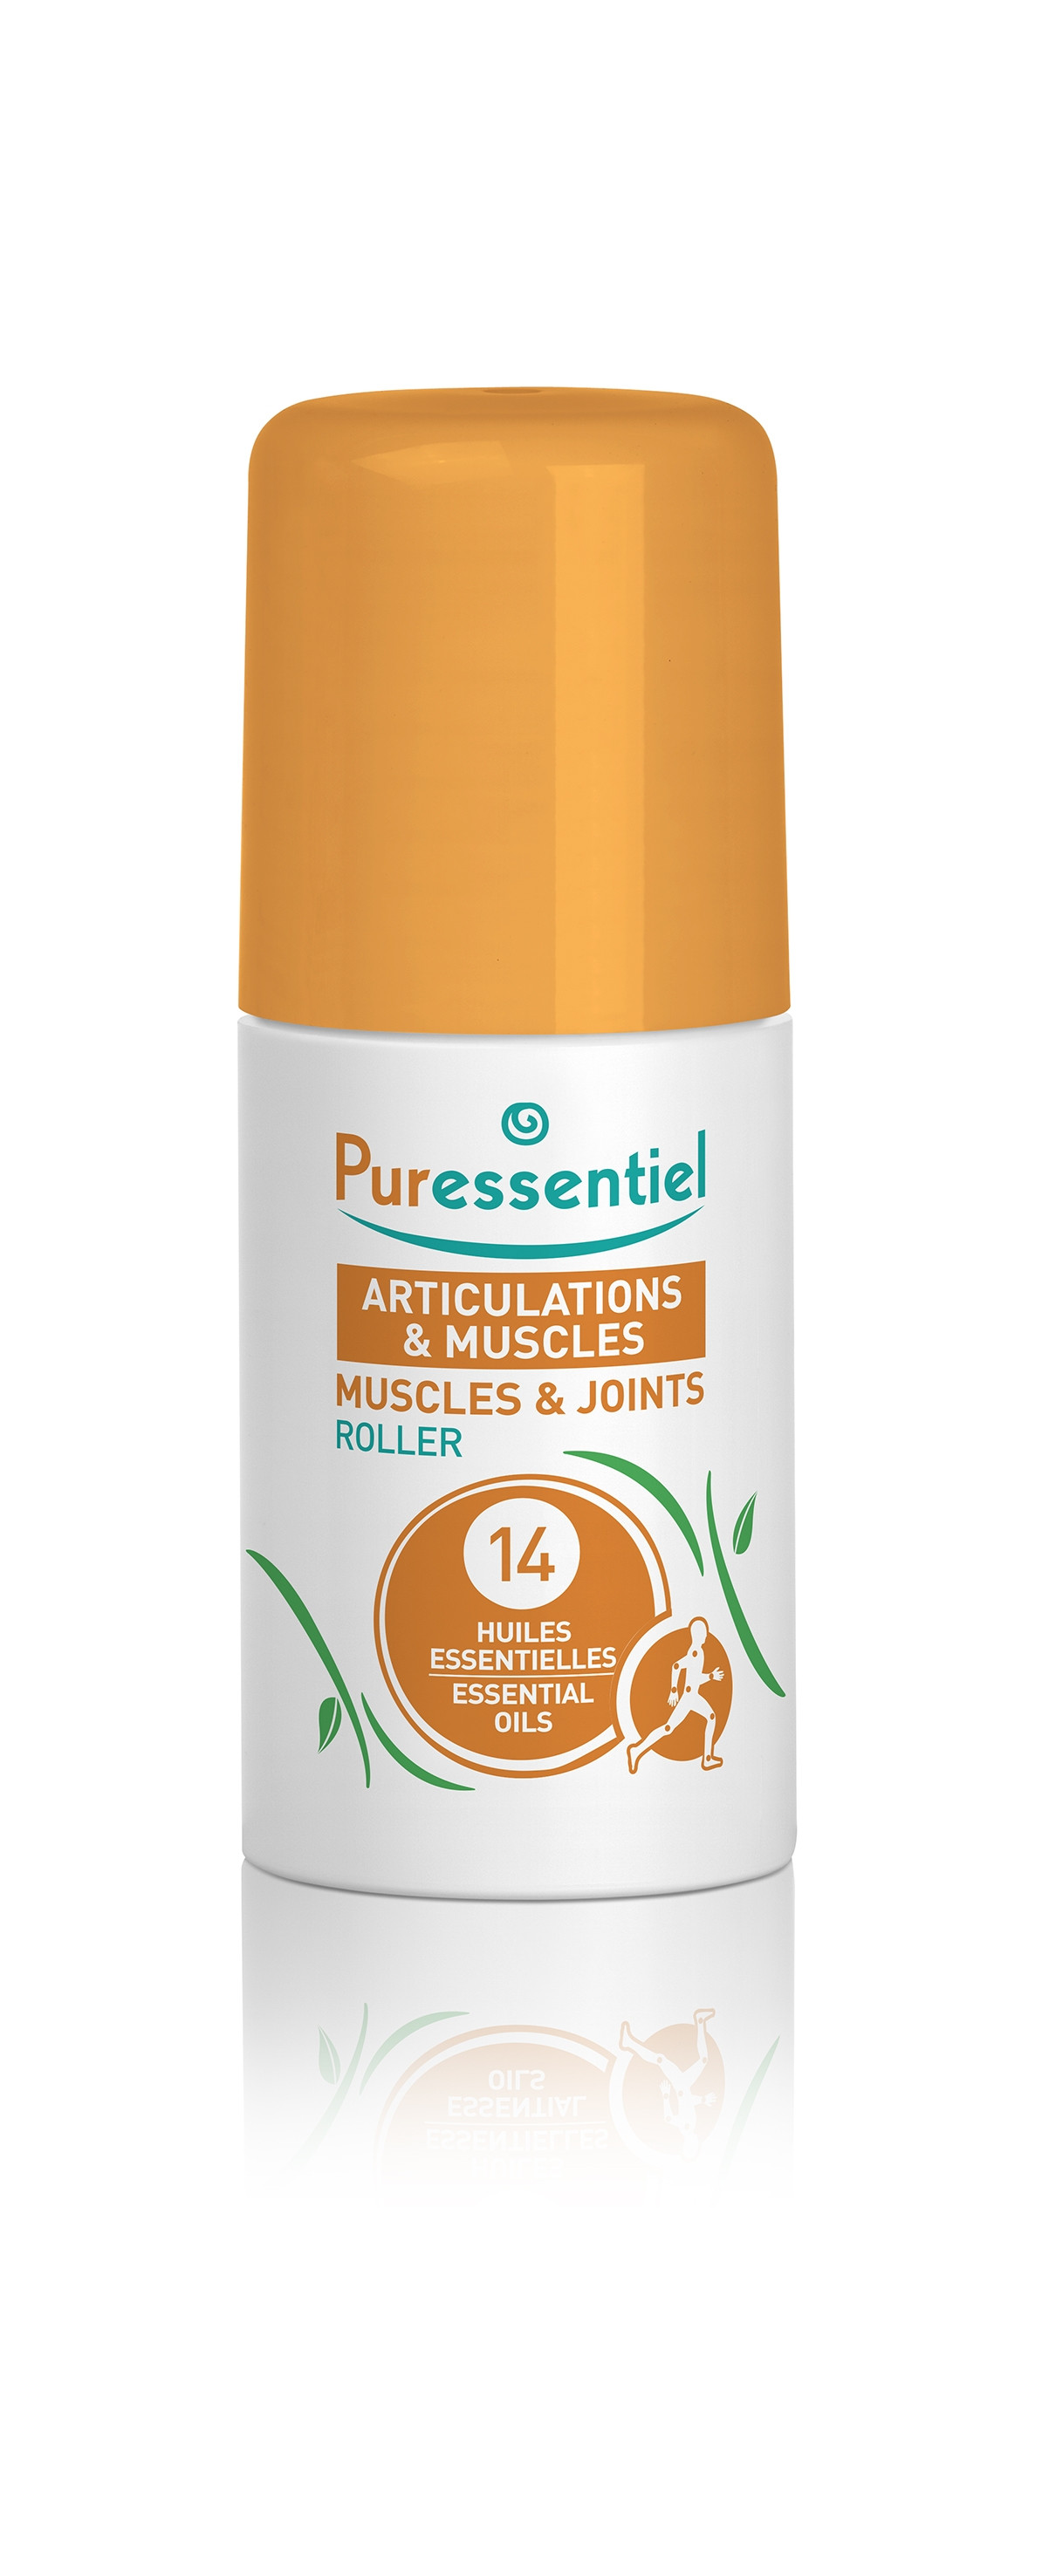 ПЮРЕСЕНШЪЛ Рол-он за стави и мускули с 14 етерични масла 75мл   PURESSENTIEL Muscles and Joints Roller with 14 essential oils 75ml